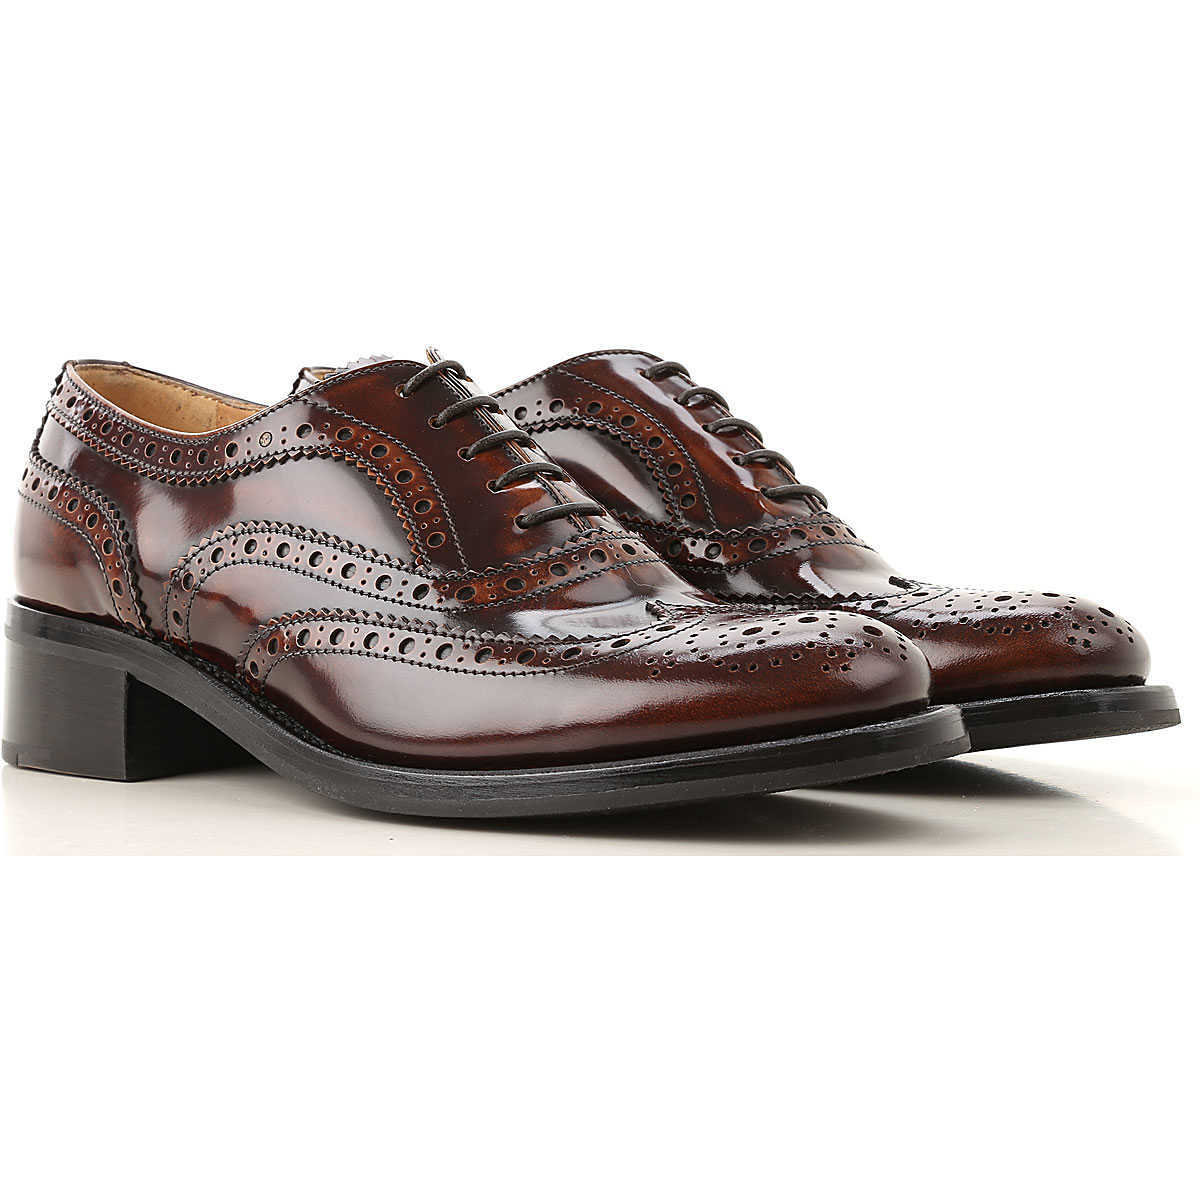 Church's Lace Up Shoes for Men Oxfords 3.5 4.5 6 6.5 Derbies and Brogues UK - GOOFASH